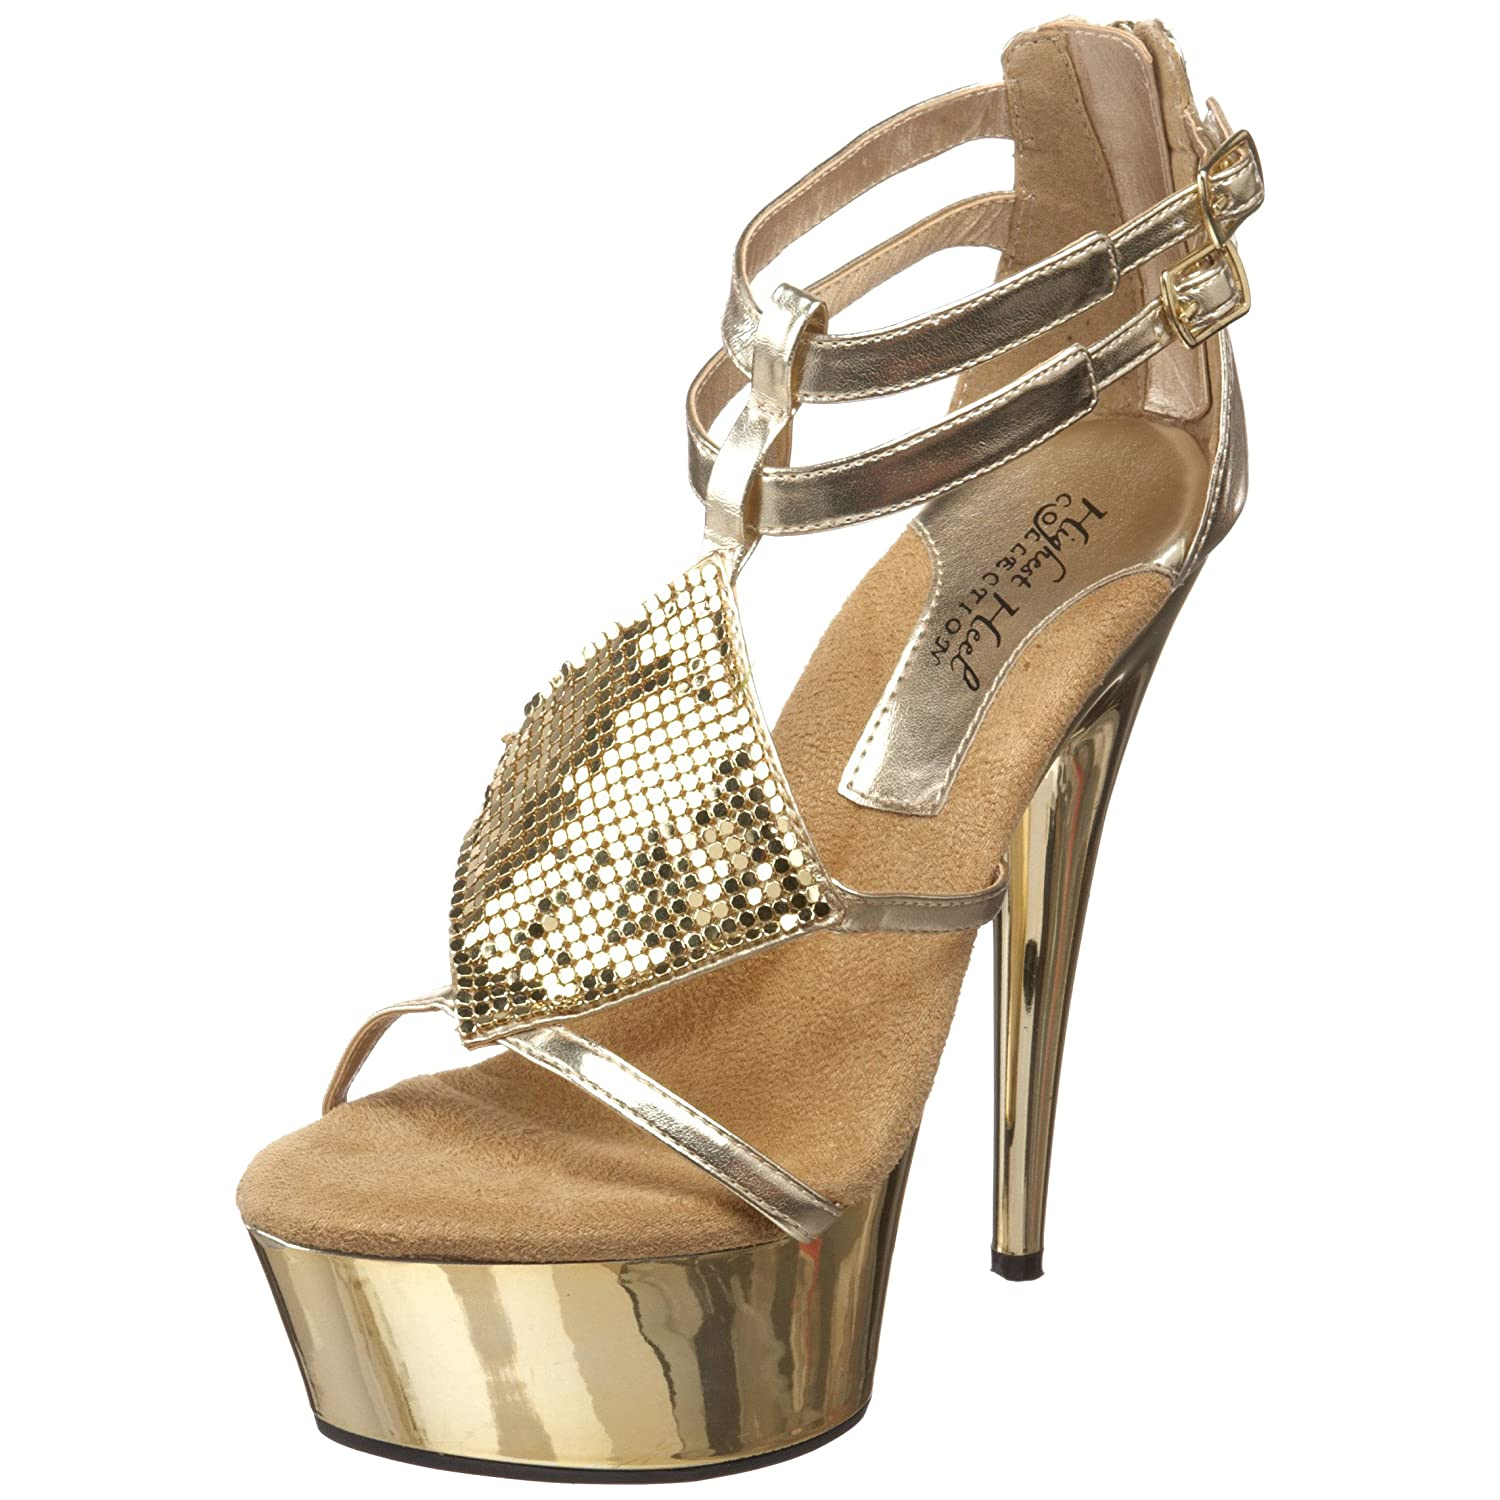 The Highest Heel - Amber-41 Platform Sandal :  high heels the highest heel the highest heel amber41 platform sandal platform heels